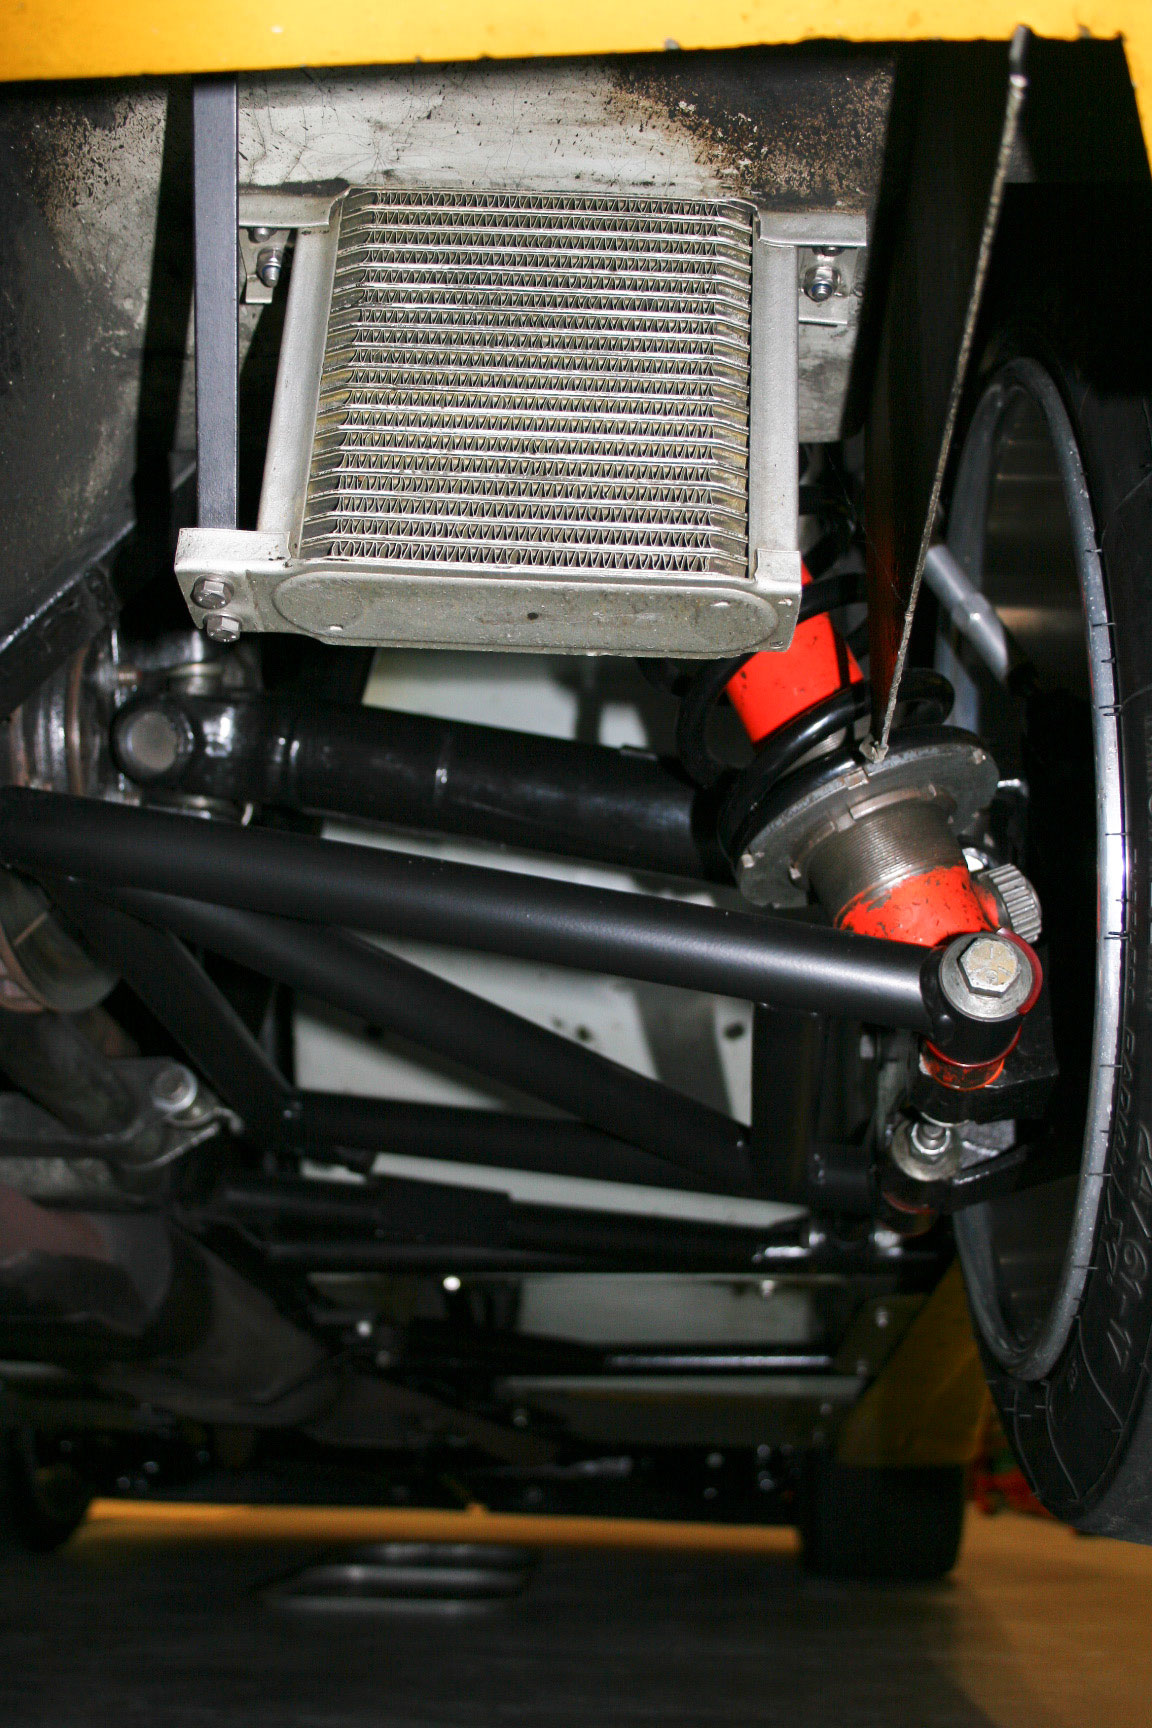 TVR SEAC racer Rear mounted differential oil cooler